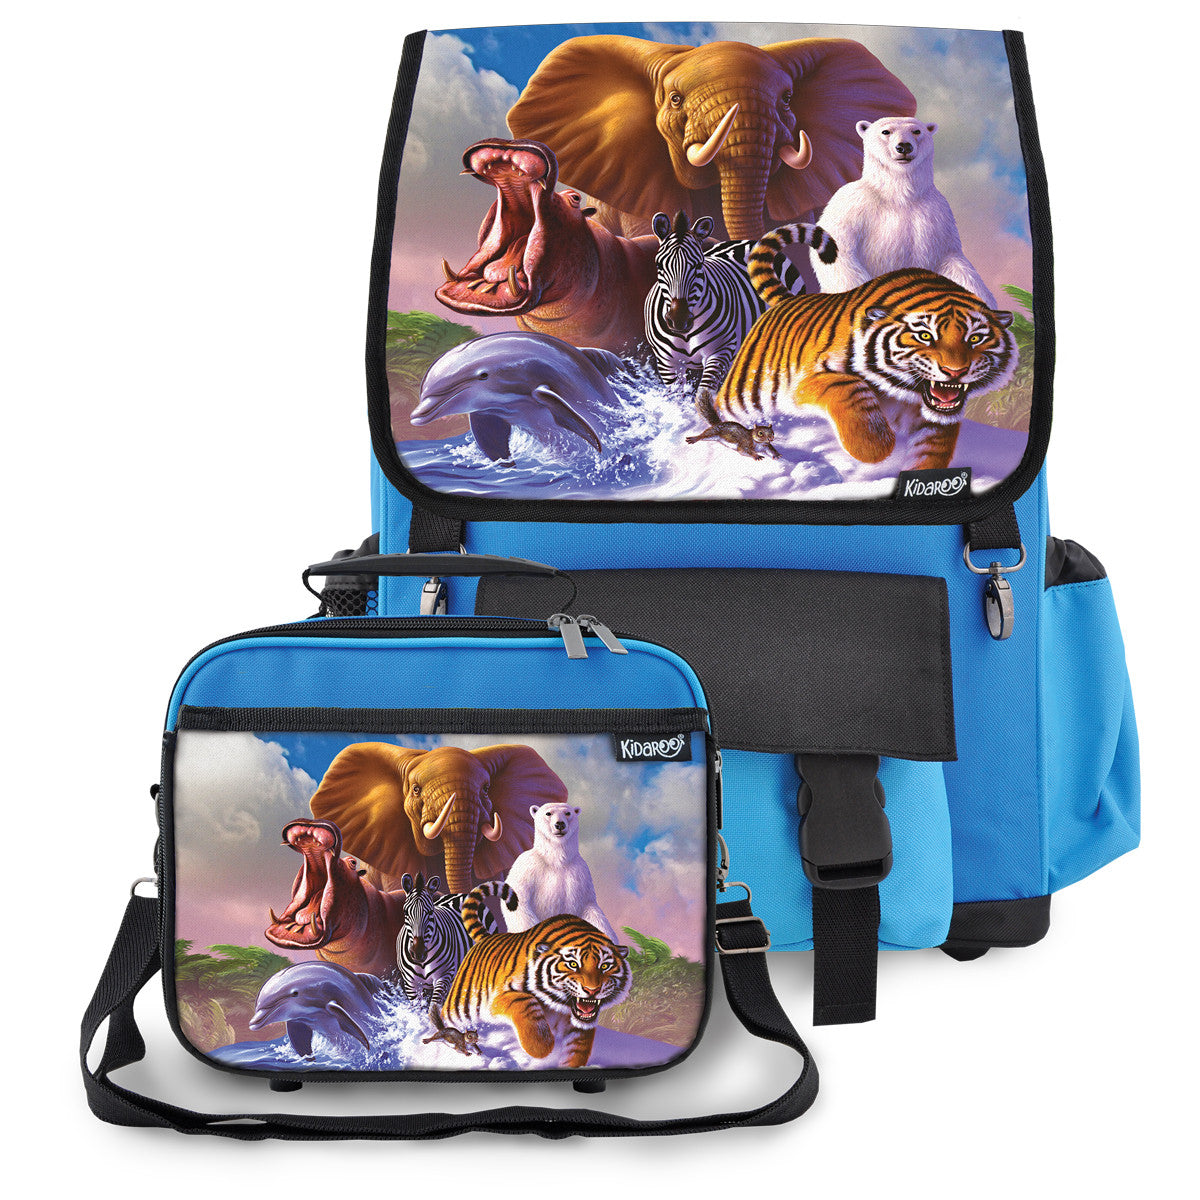 Kidaroo Blue Wildlife Planet School Backpack & Lunchbox Set for Boys, Girls, Kids